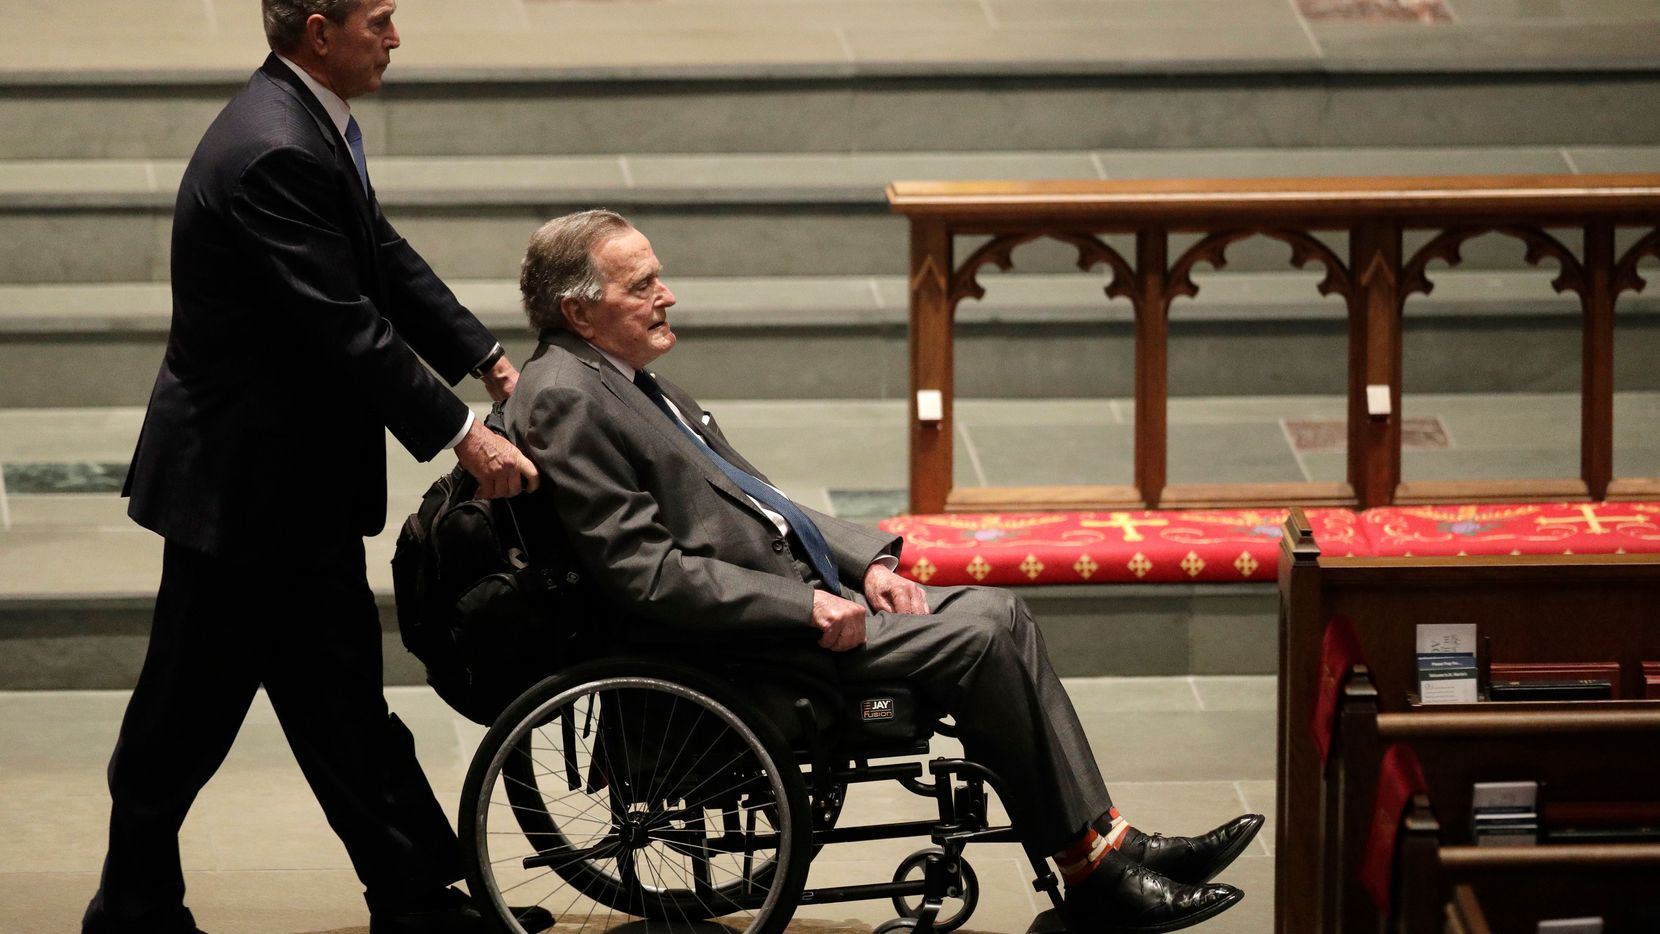 Former presidents George W. Bush and George H.W. Bush arrive at St. Martin's Episcopal Church for the funeral service for former first lady Barbara Bush in Houston.